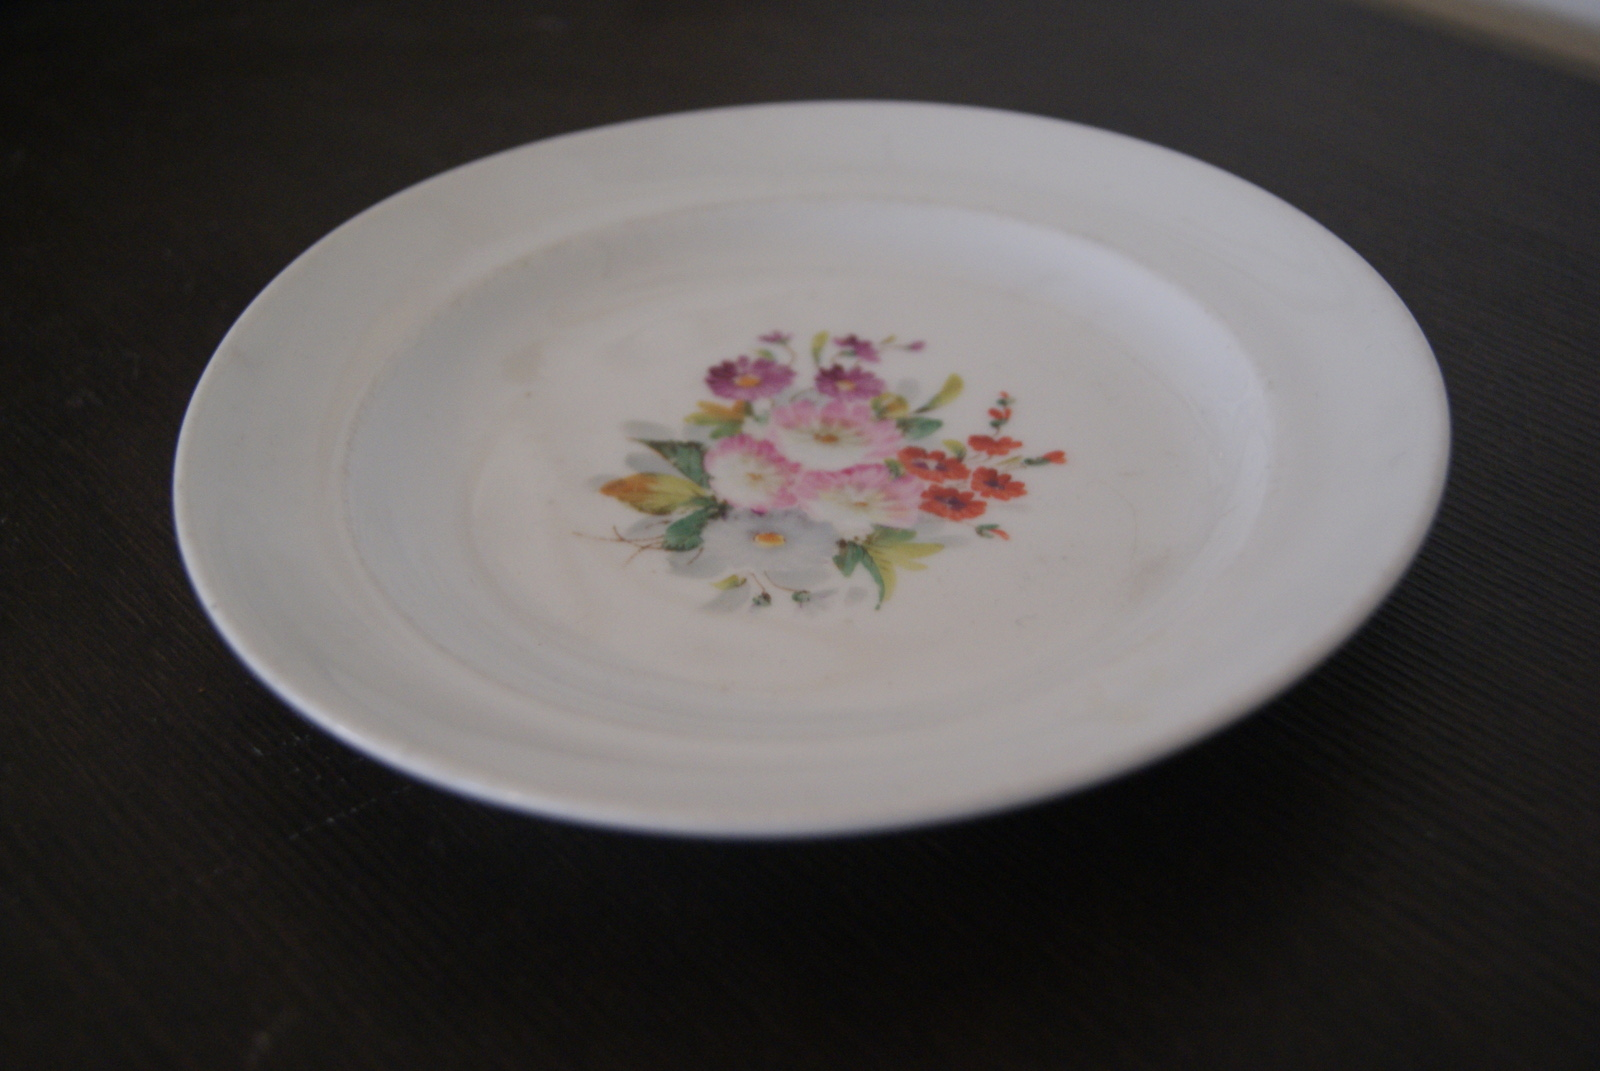 Waldenburg - Altwasser plate with bouquet. Red, white, purple, pink flowers and leaves